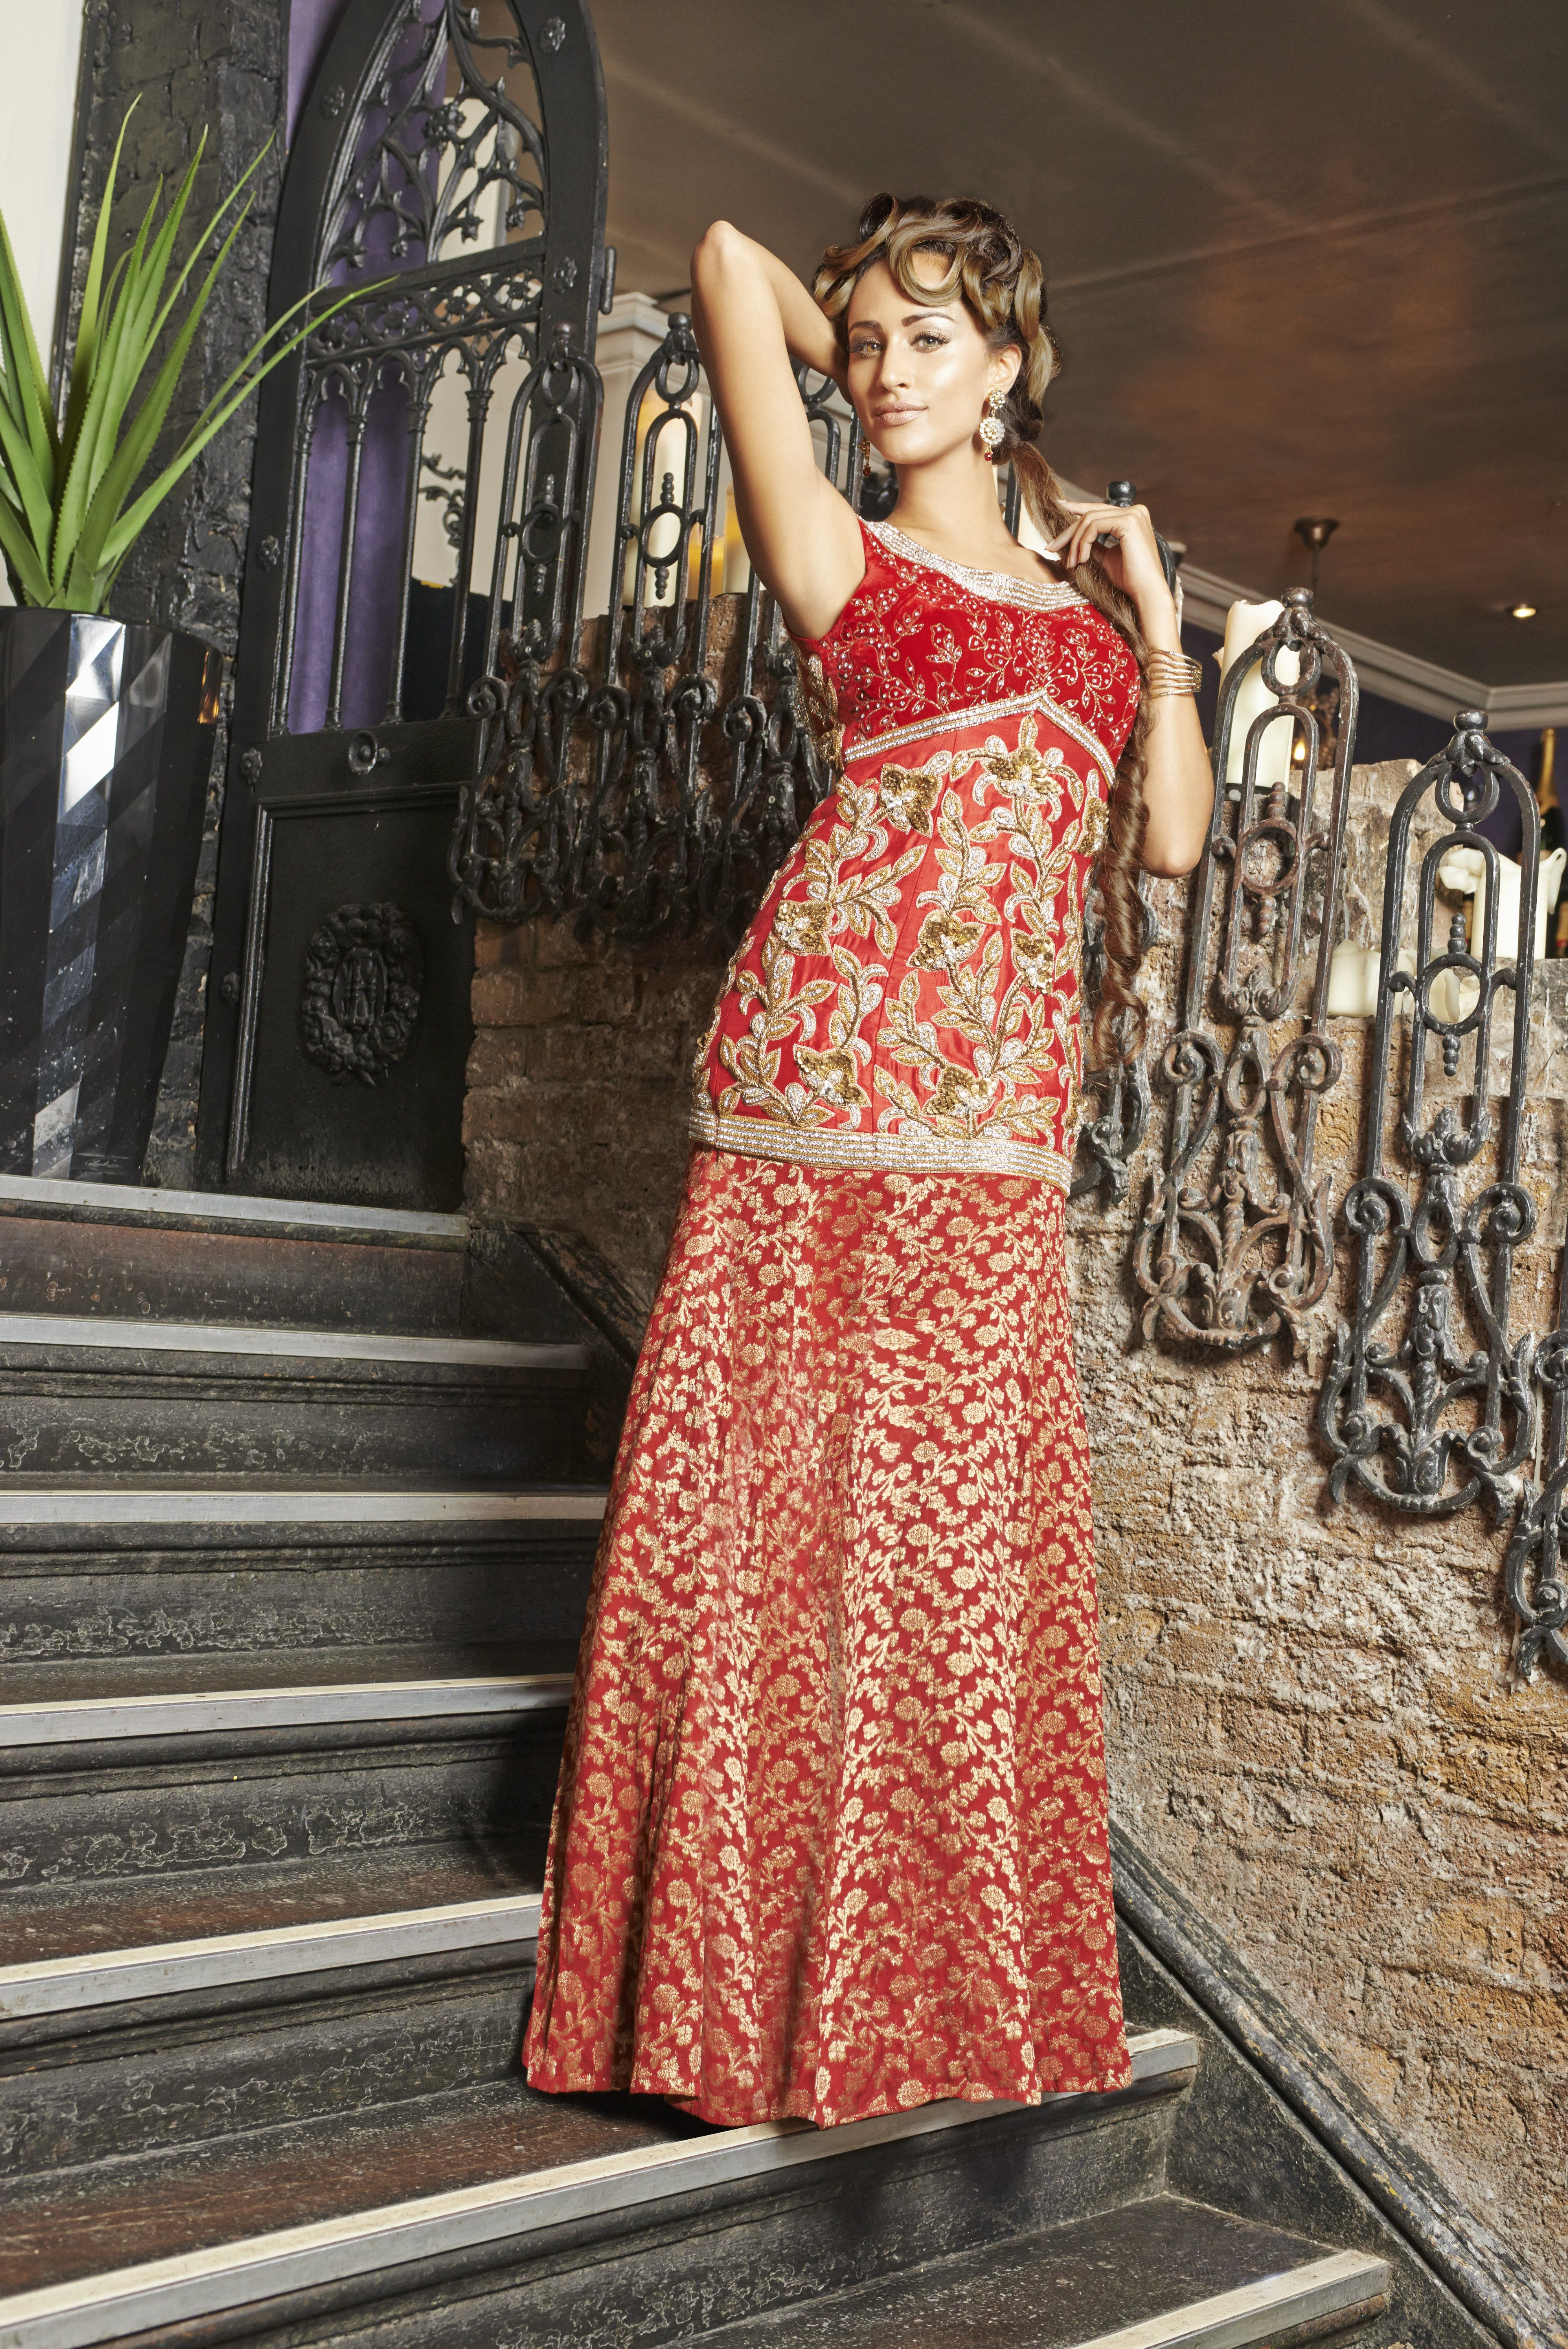 Wf maroon brocade silk and velvet evening reception gown with